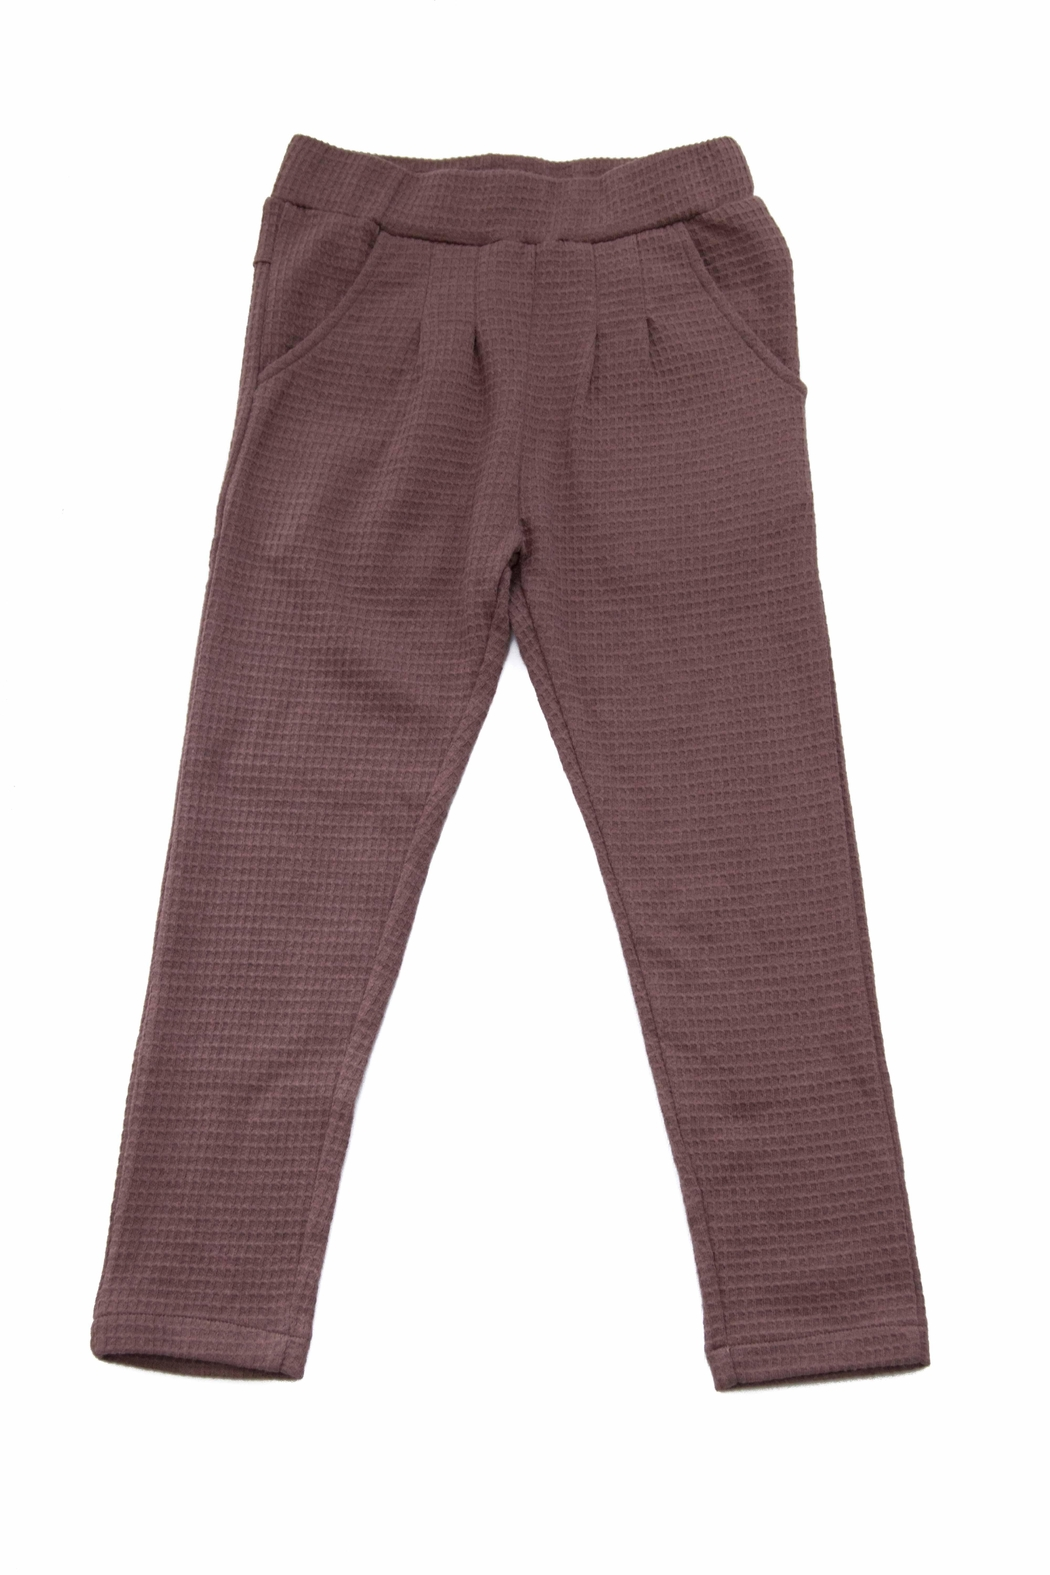 Small Rags Rose Harem Pants - Front Cropped Image